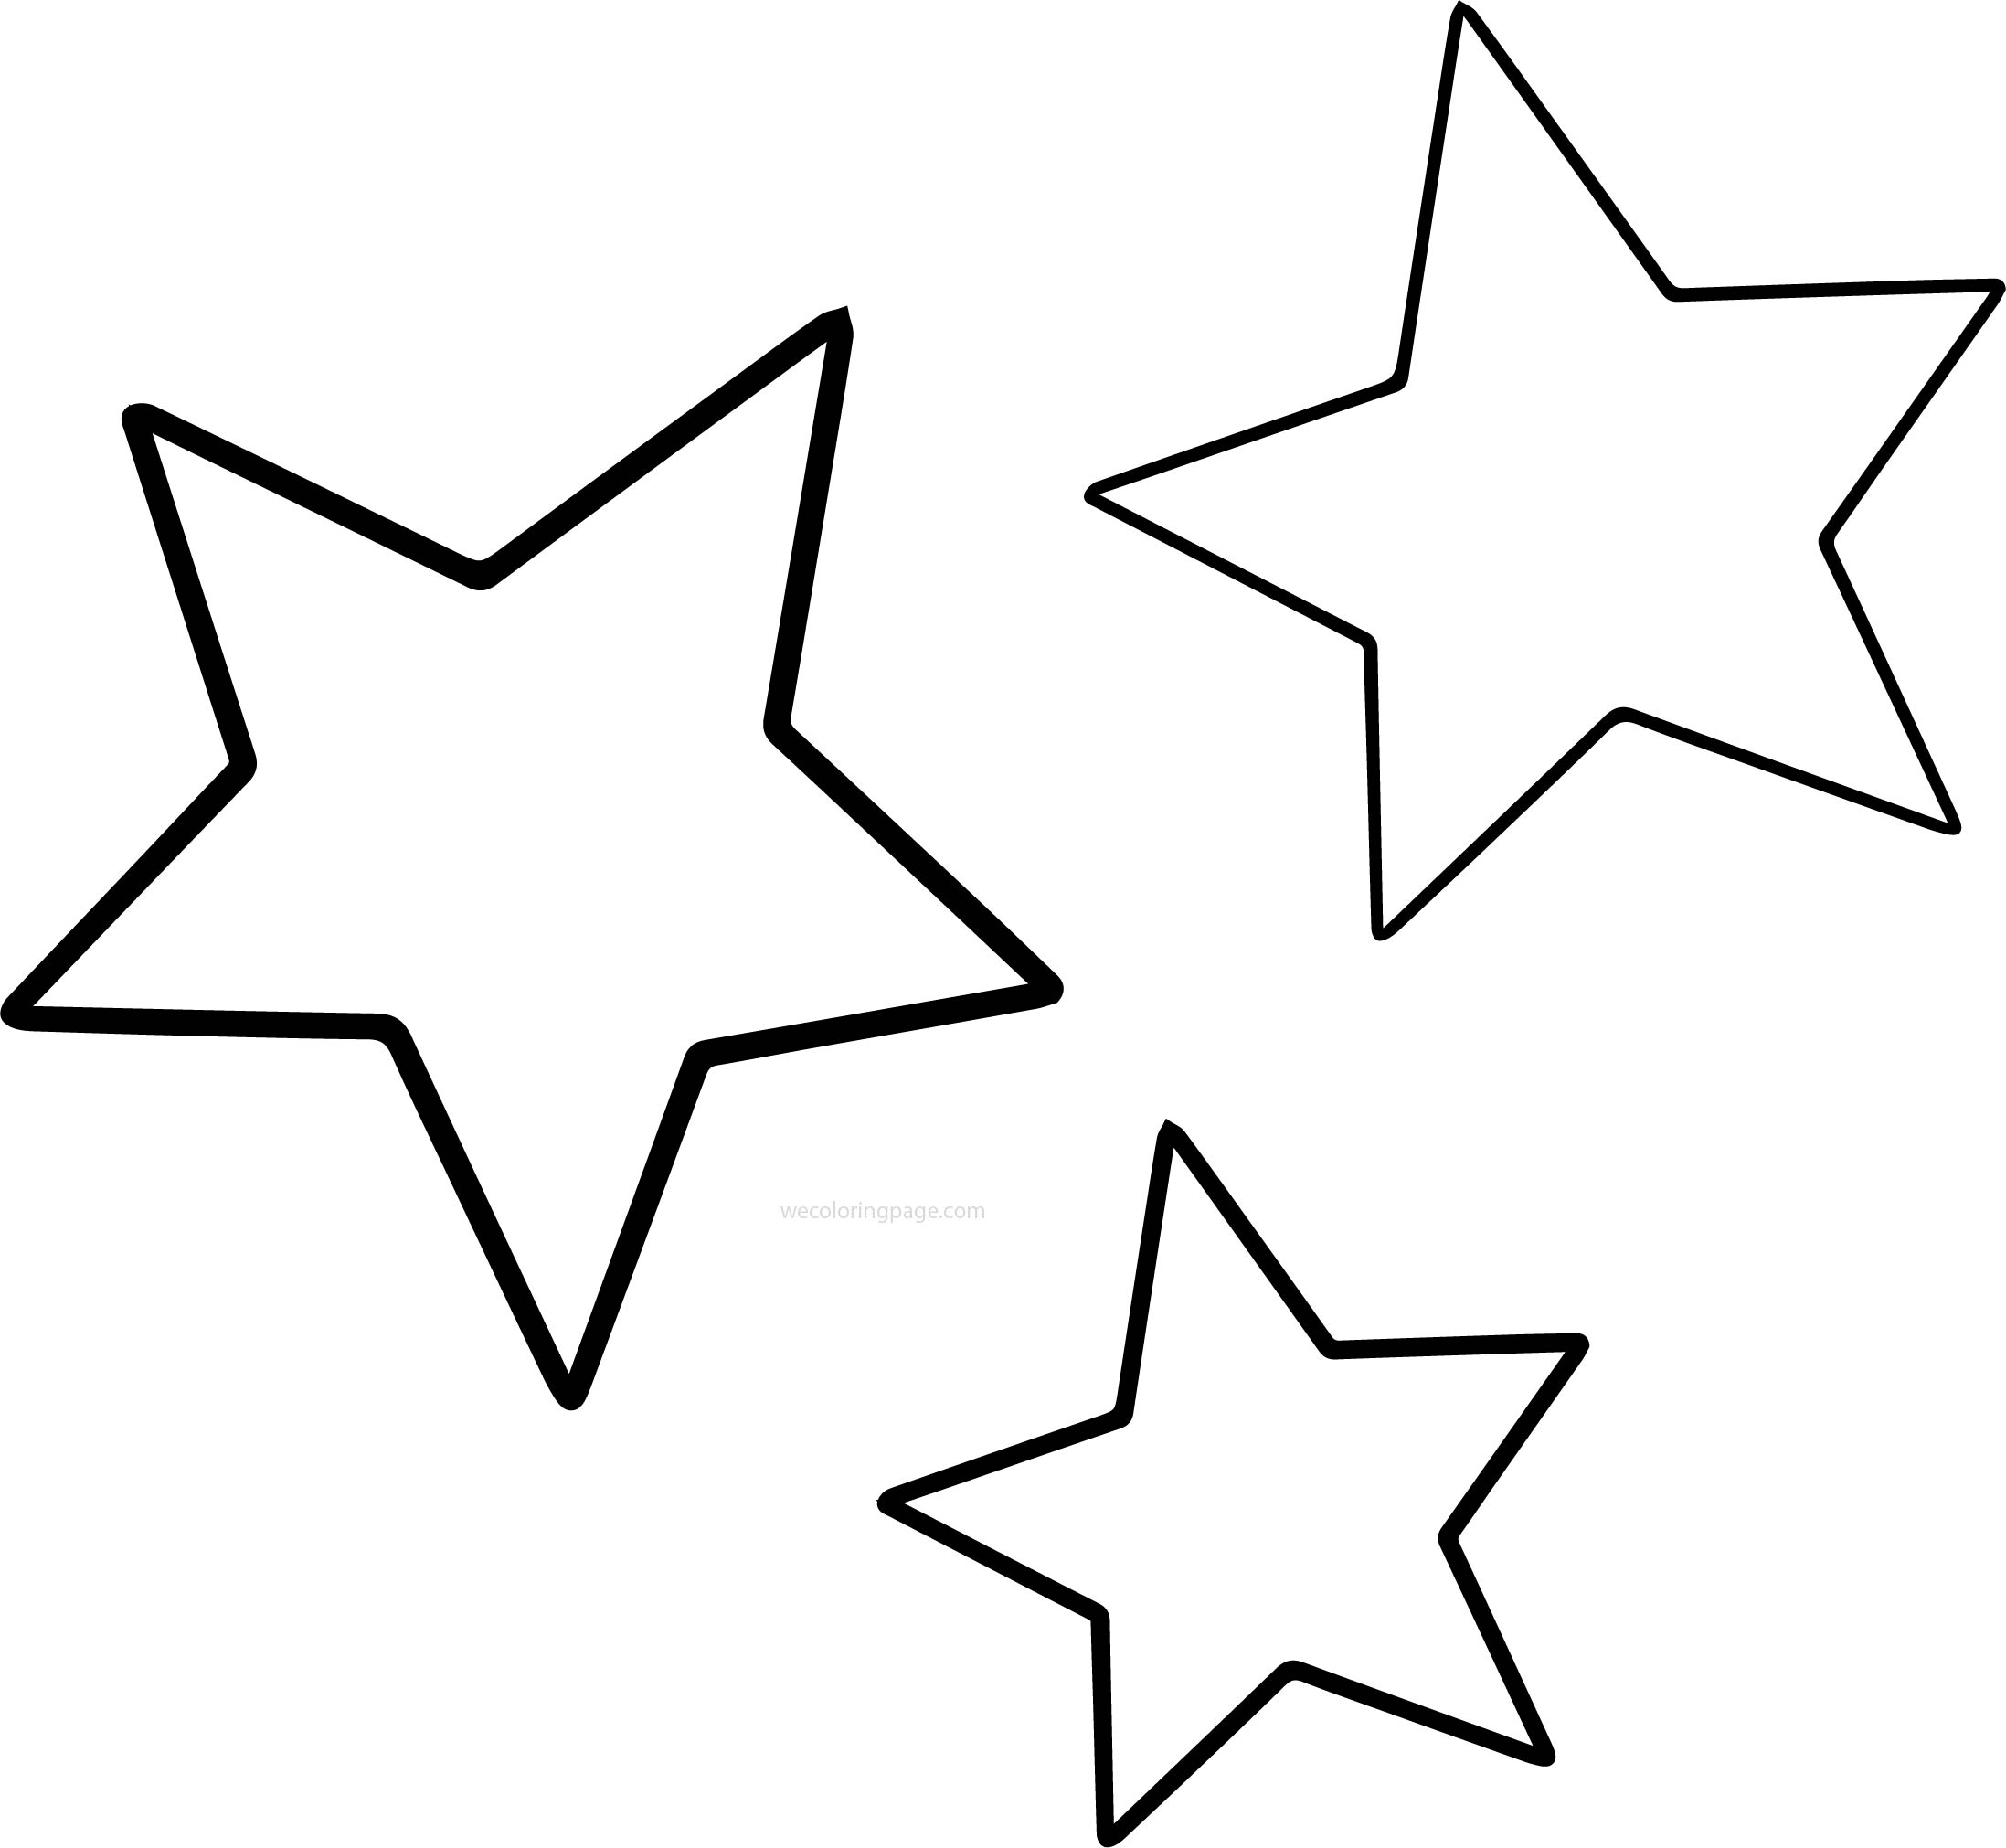 three star coloring pages - Star Coloring Pages